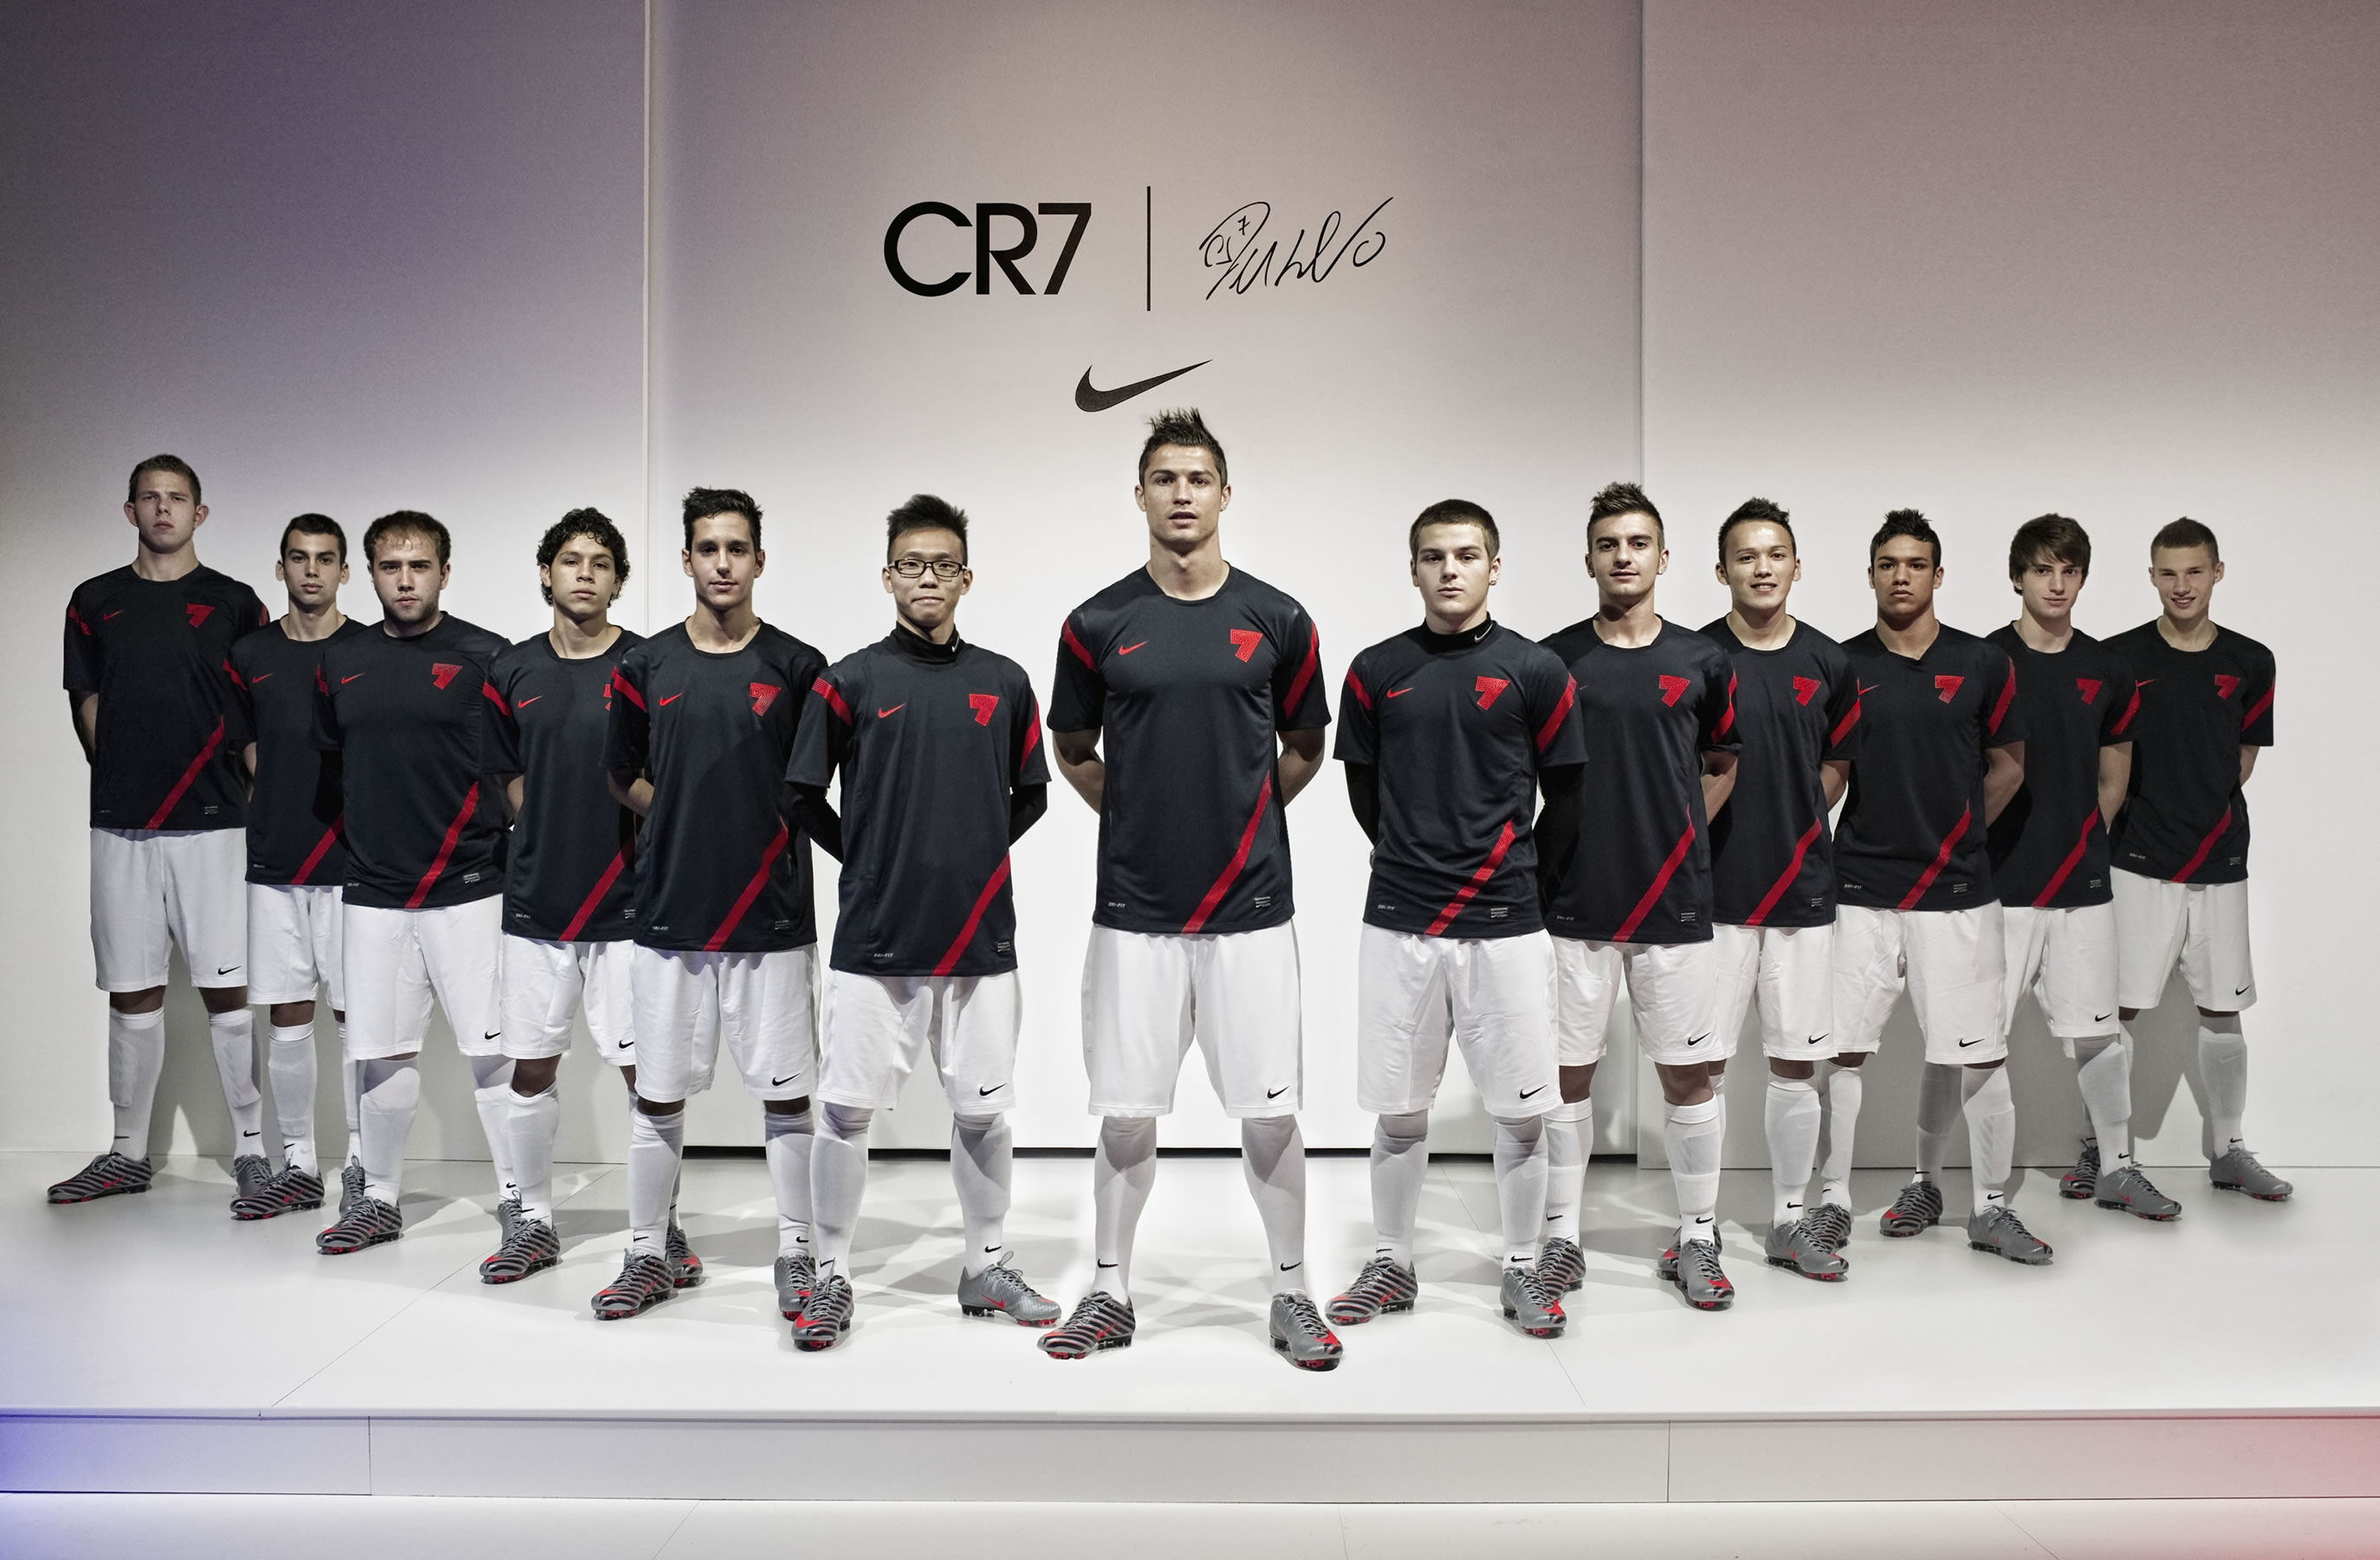 CR7 Nike Workout Squad Wallpaper